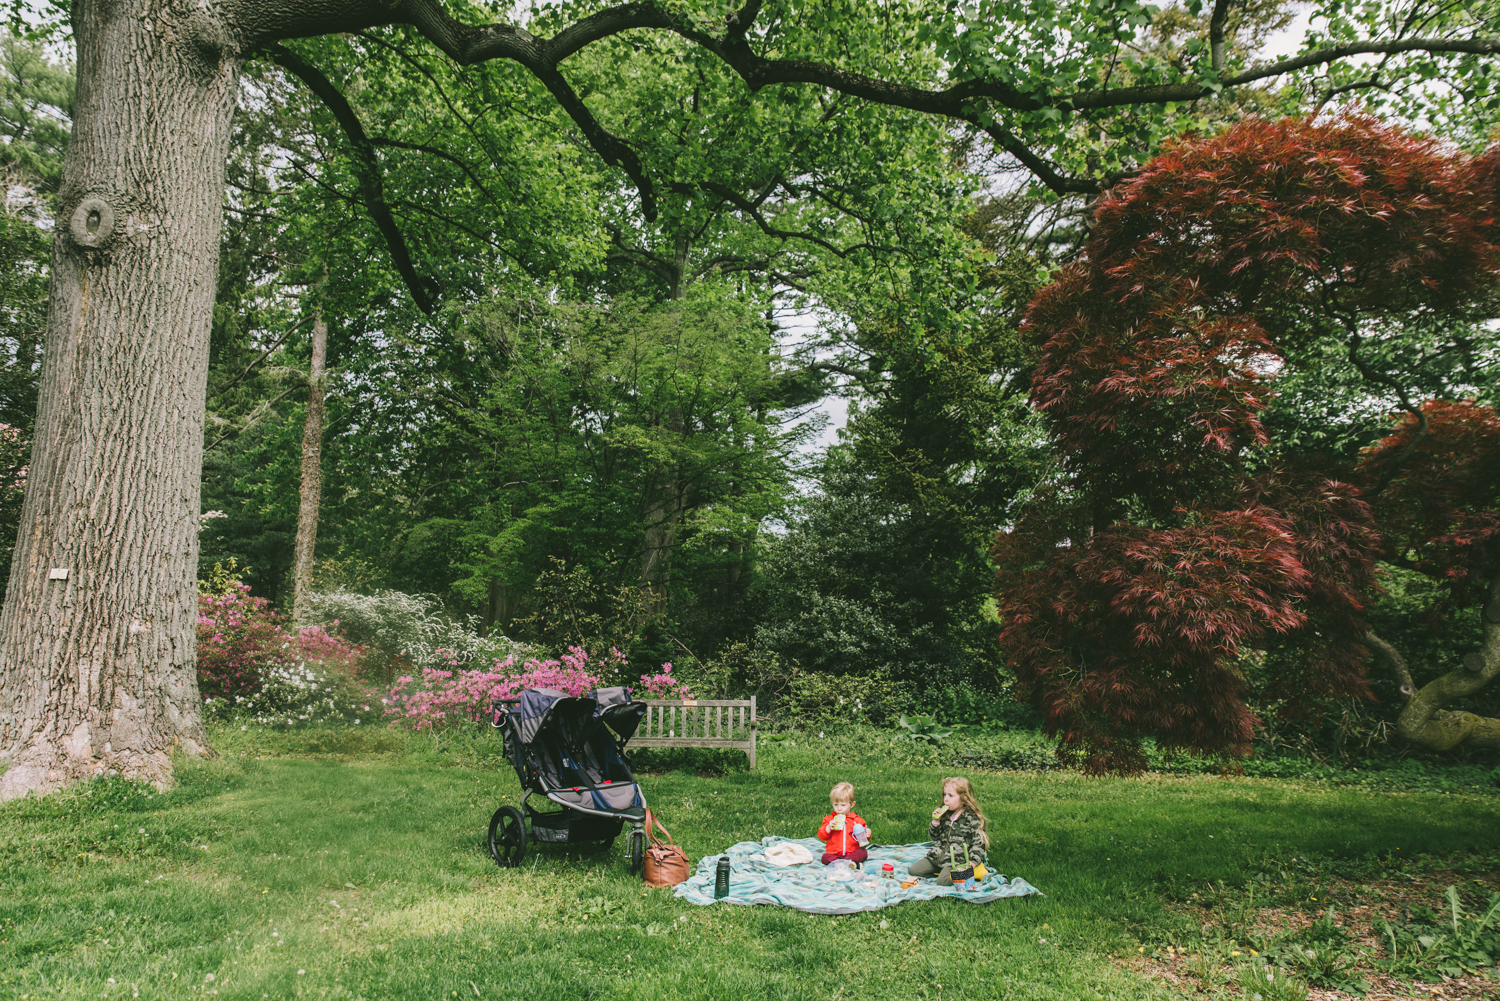 boy-and-girl-picnic-under-tree-francesca-russell-photography-and-films-long-island-family-photographer.jpg